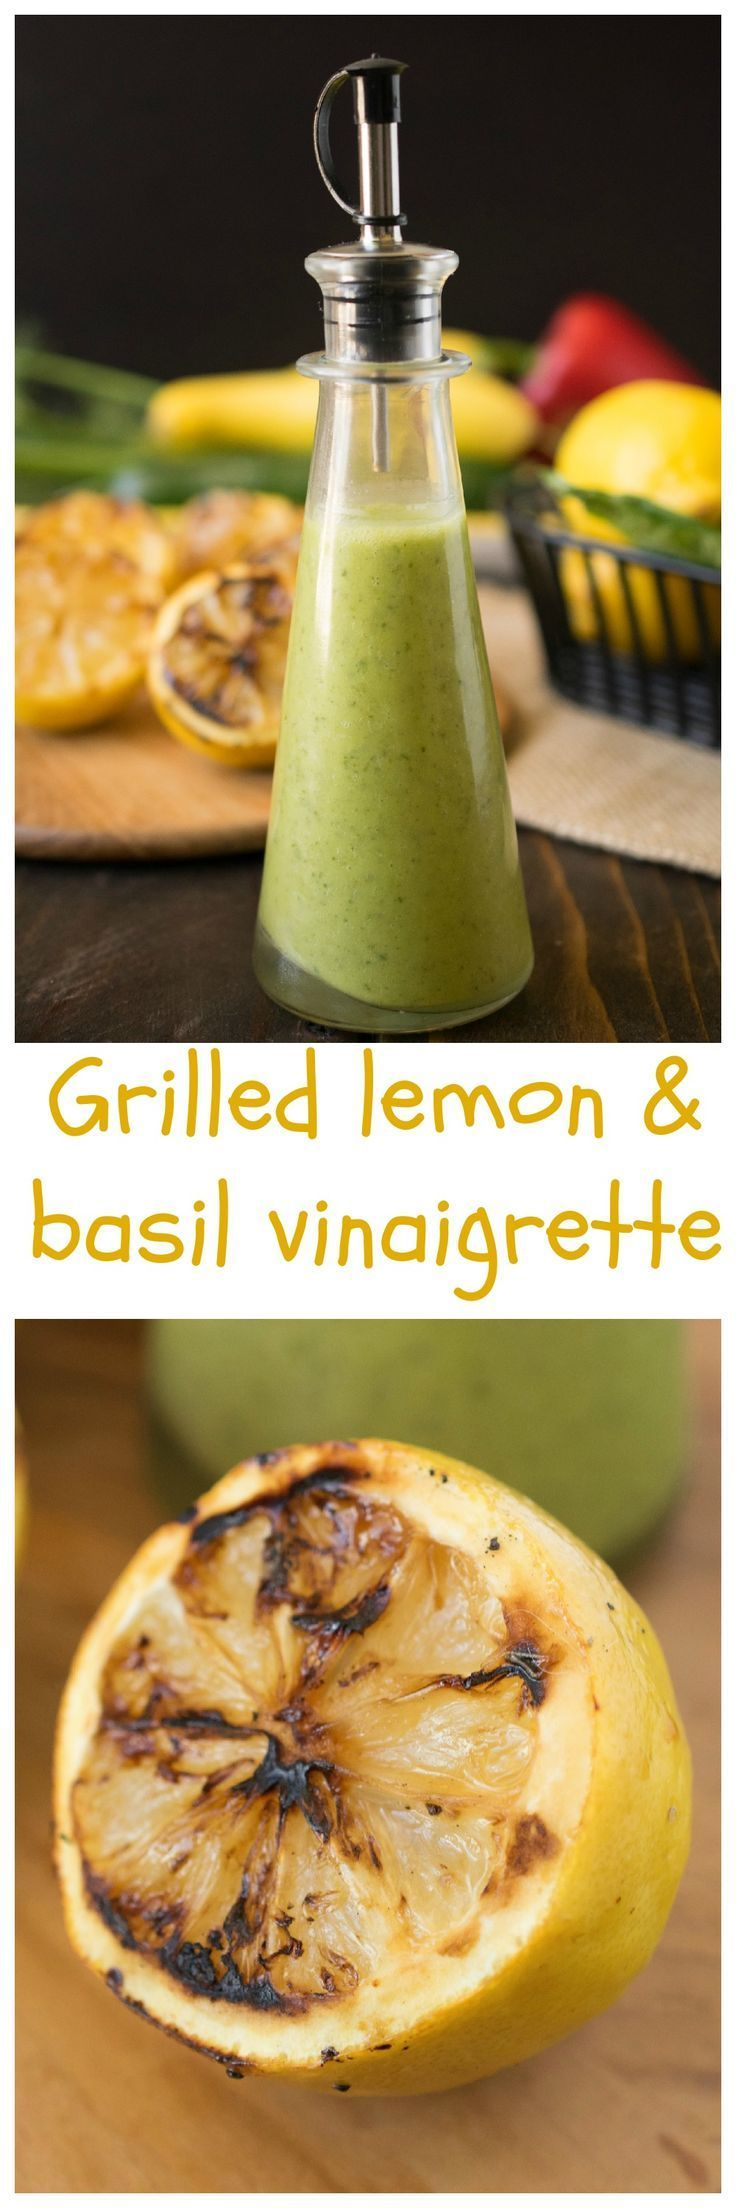 Grilling lemons make them juicy and sweet which makes for a delicious dressing with fresh basil.